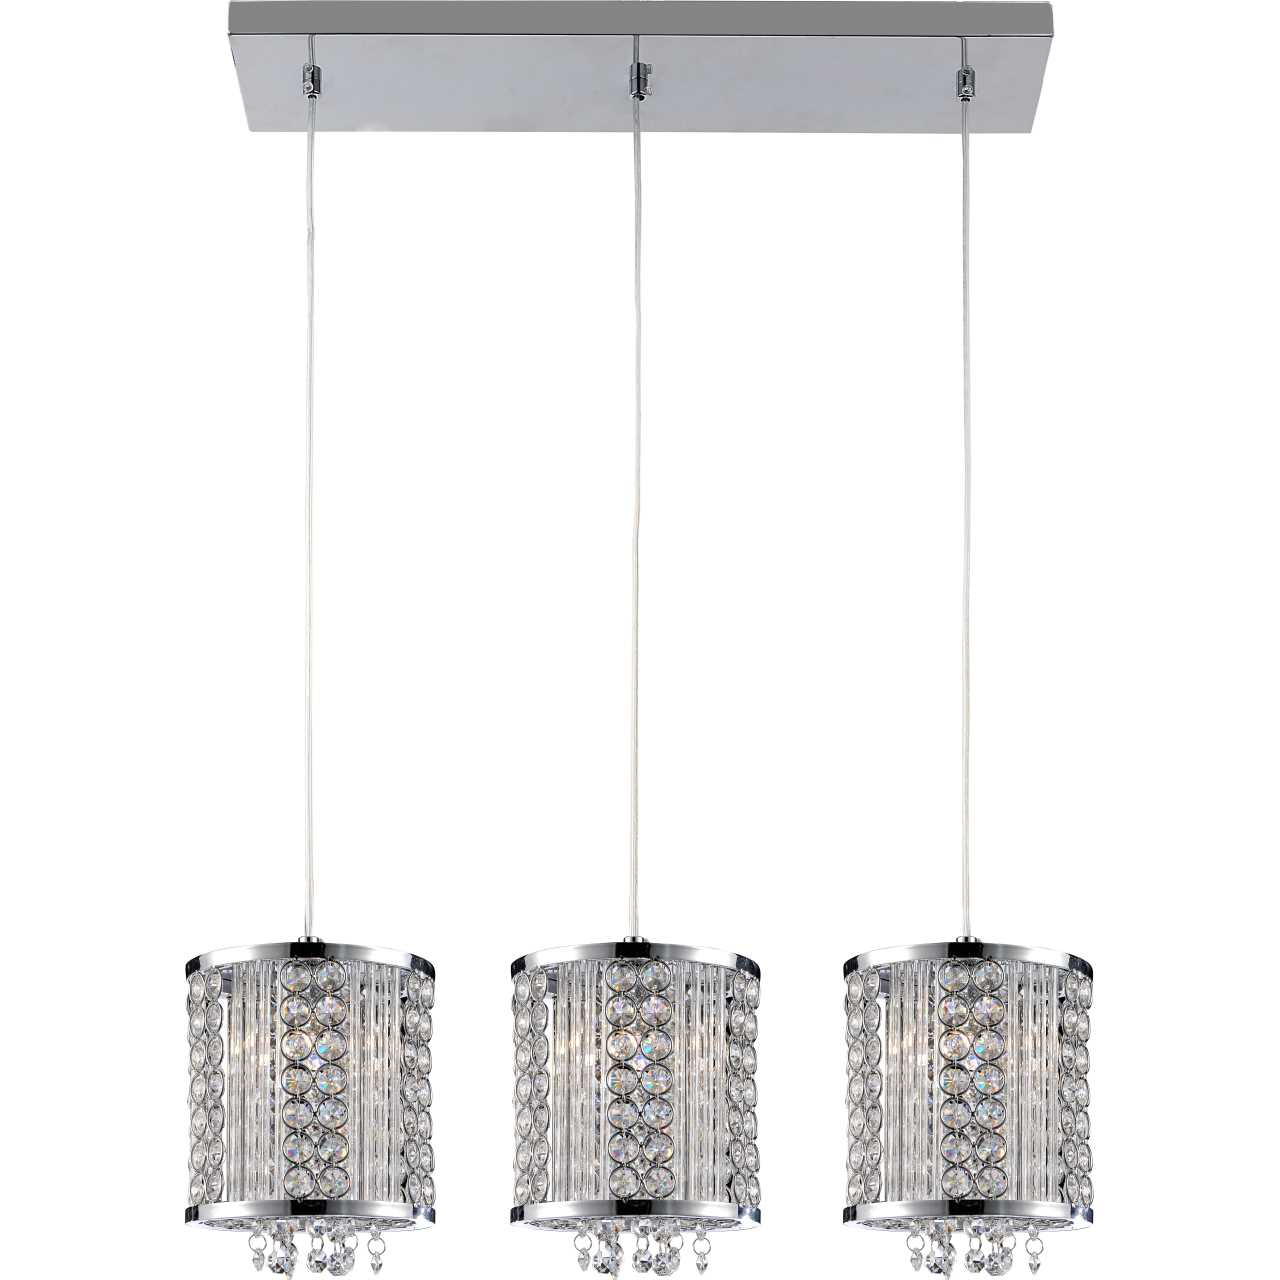 Brizzo lighting stores 28 cristallo modern crystal linear mini picture of 28 cristallo modern crystal linear mini pendants on rectangular platform polished chrome mozeypictures